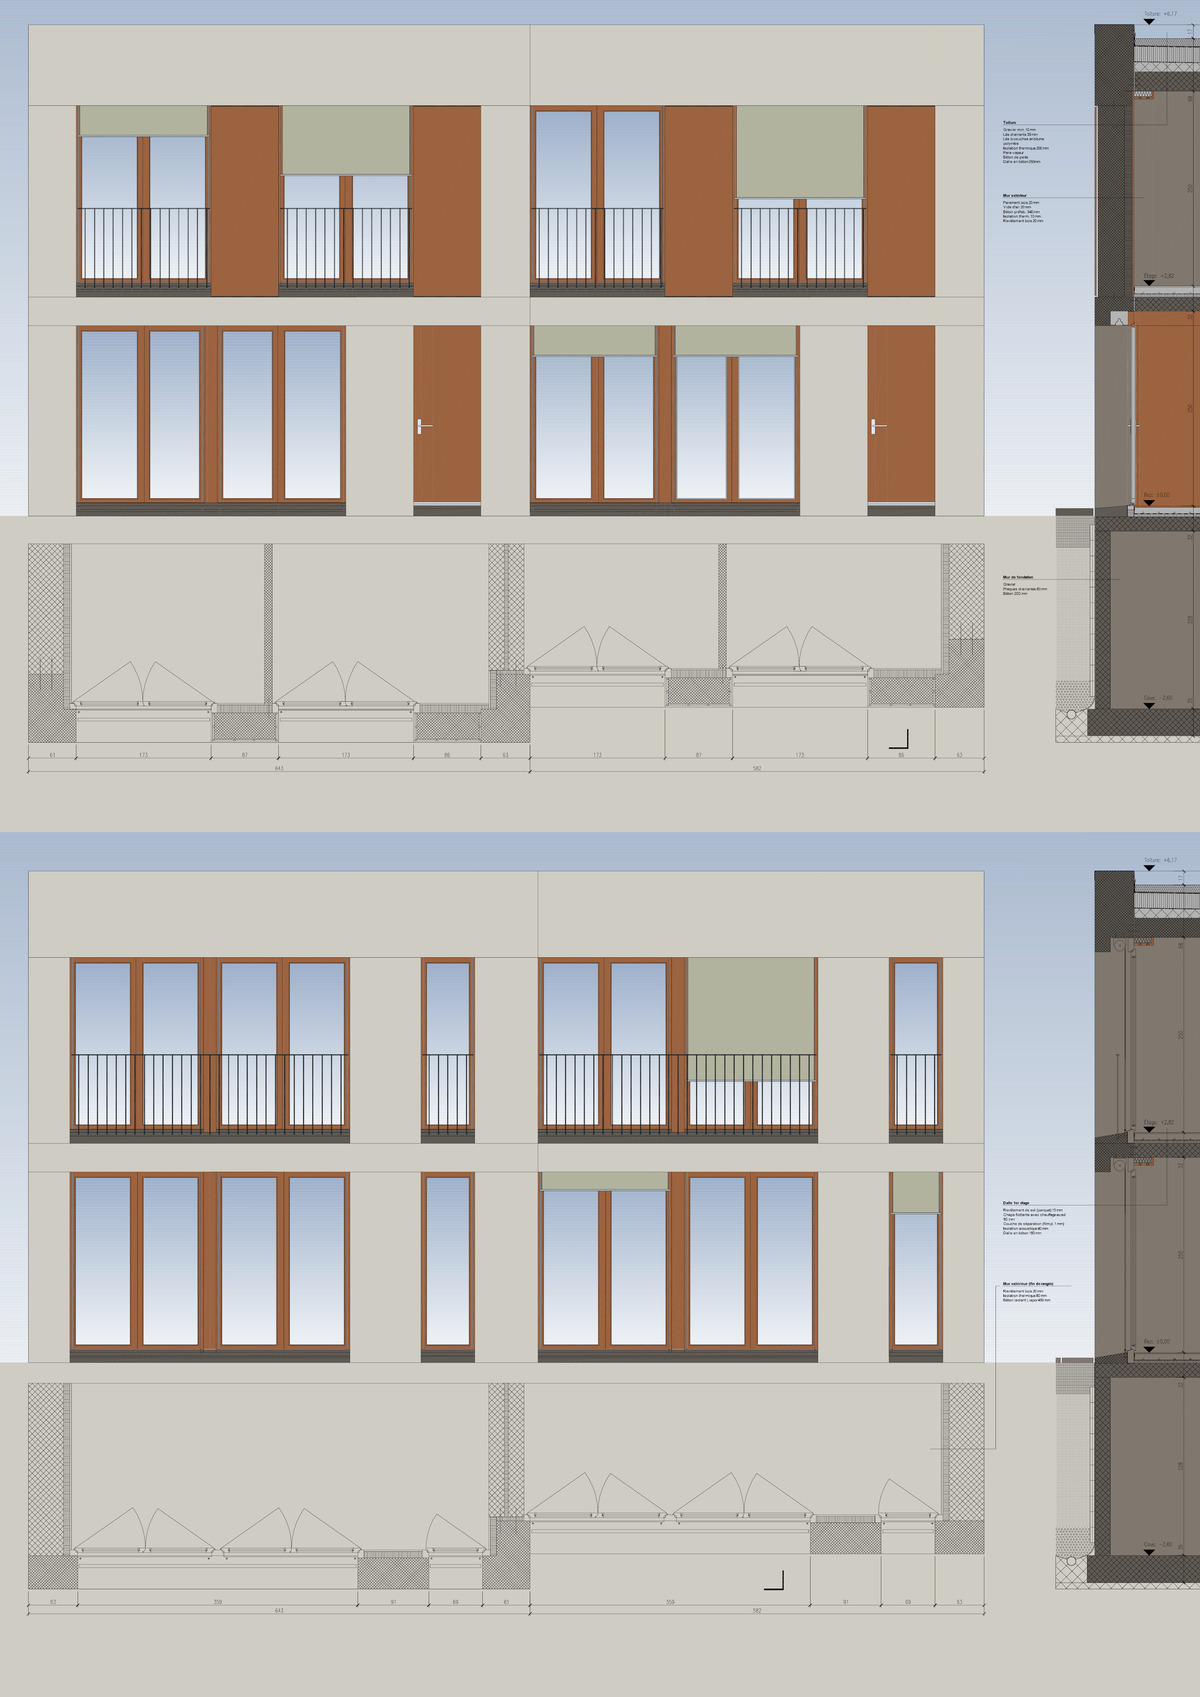 Detailed elevations